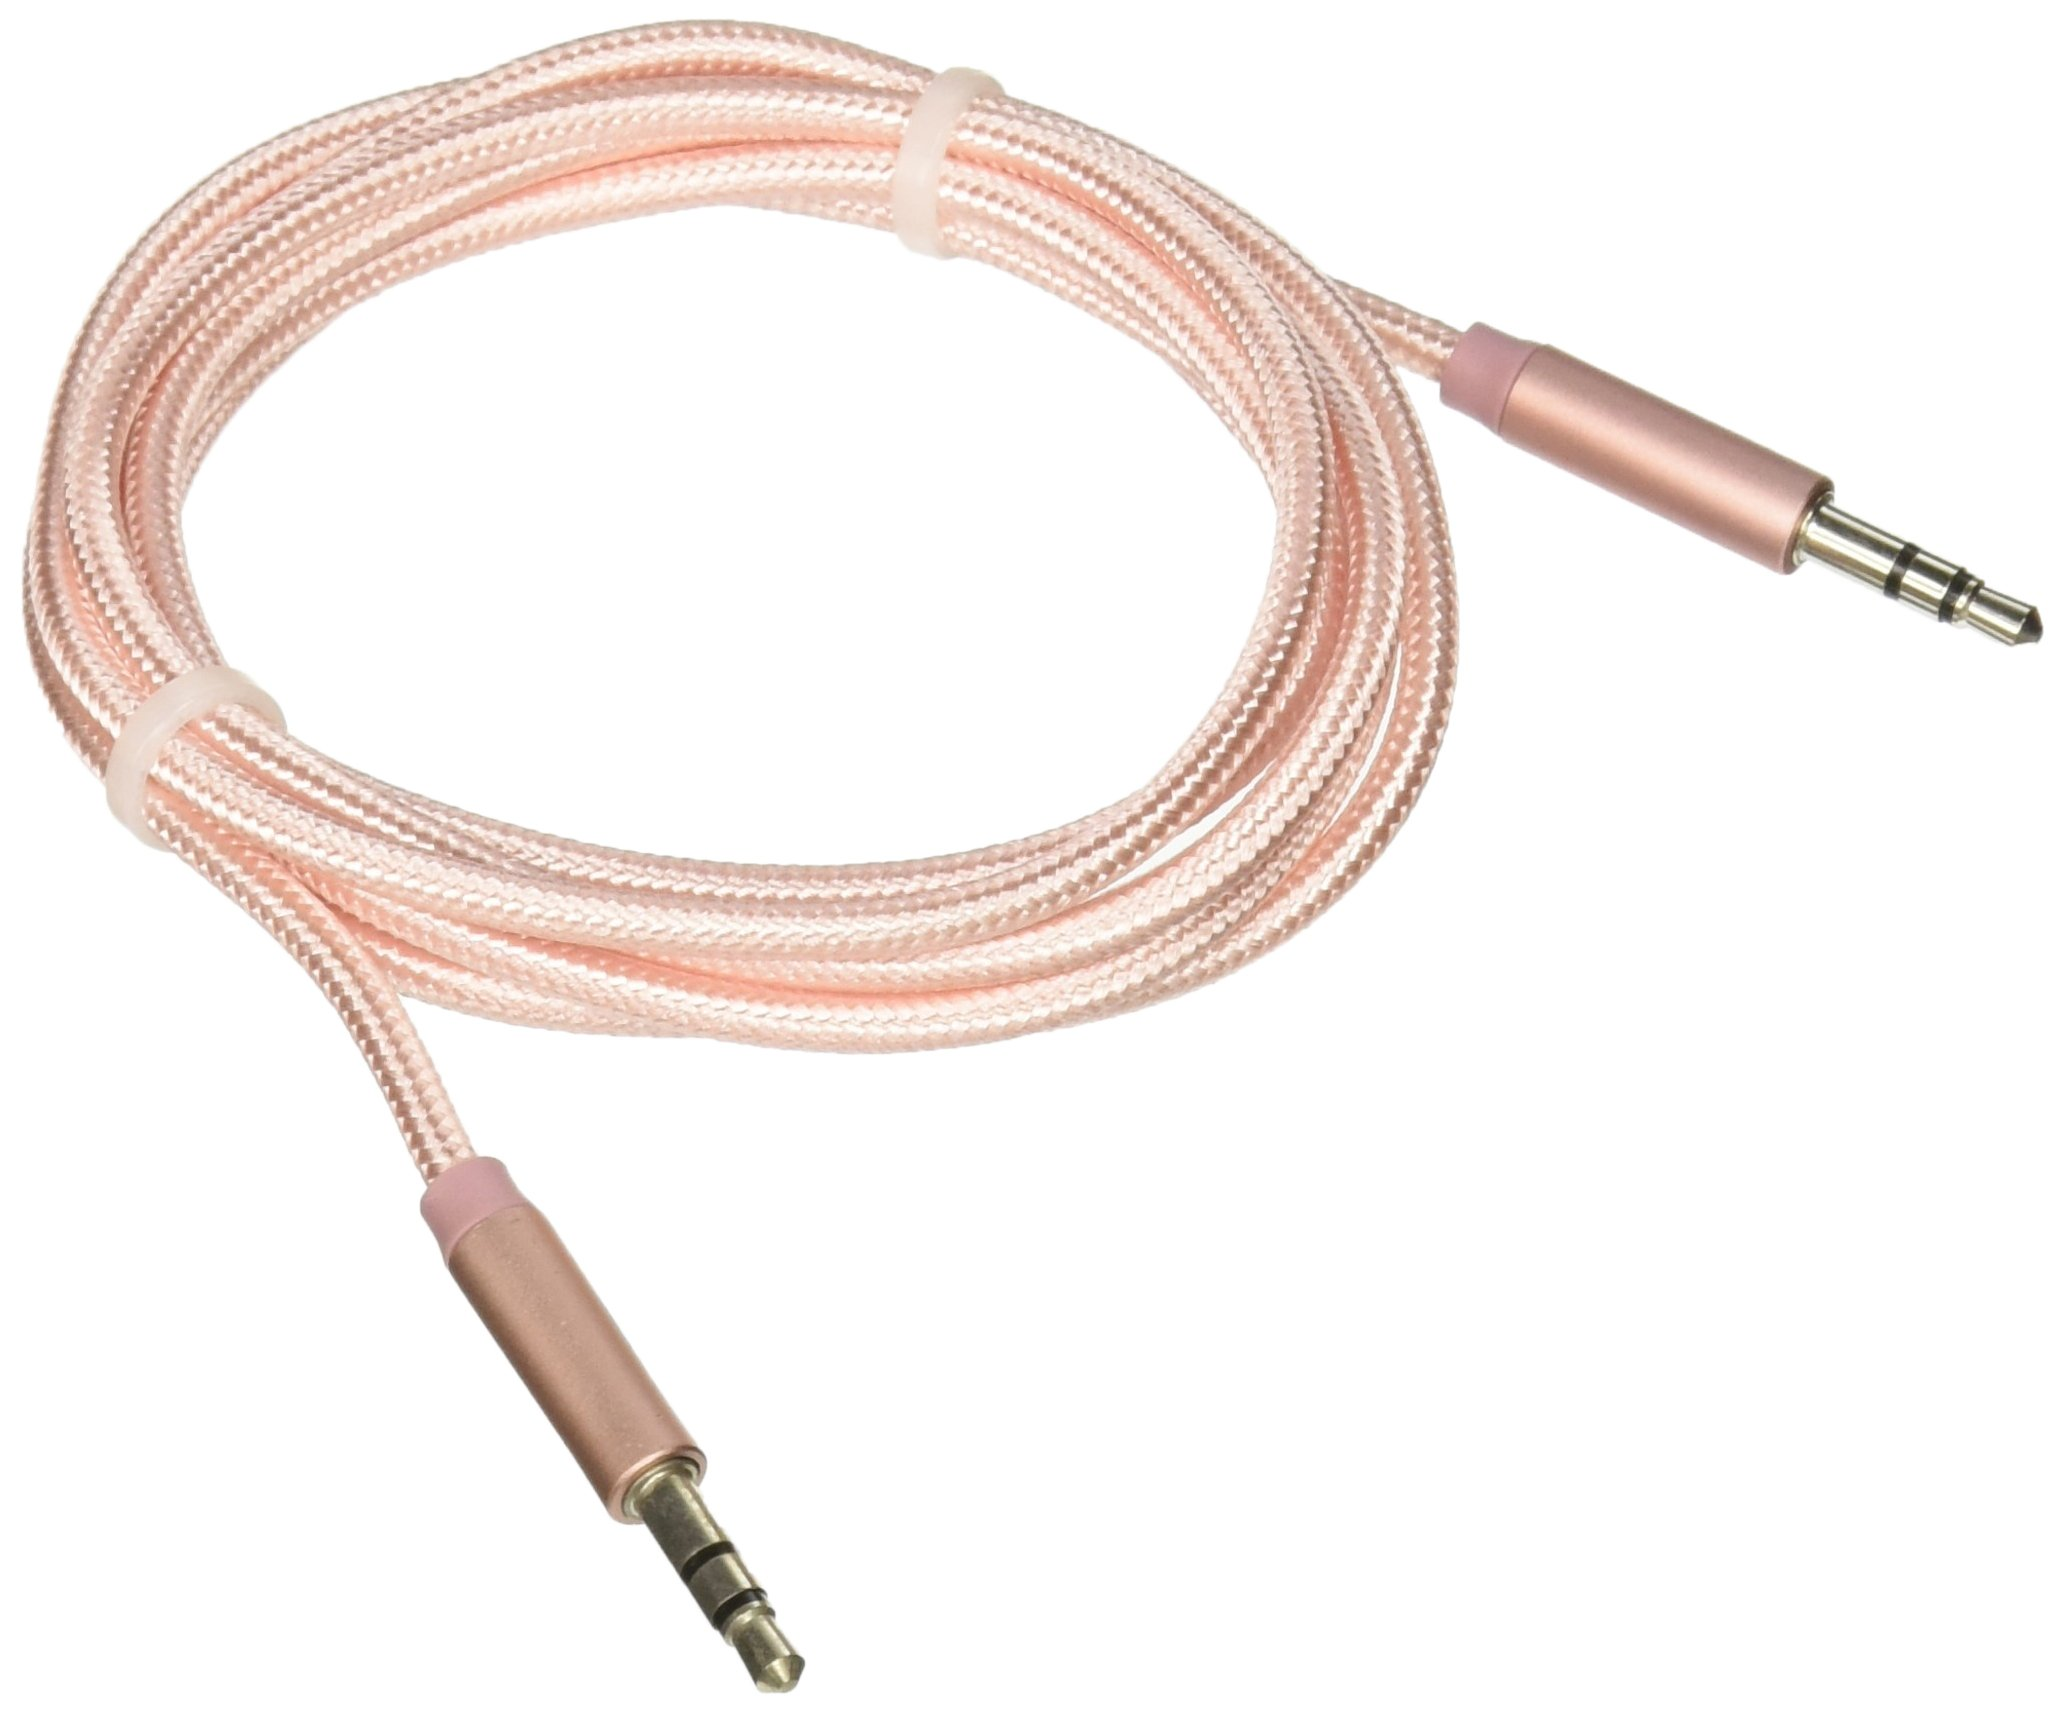 iHome Other Cable for Universal/Smartphones - ROSE GOLD